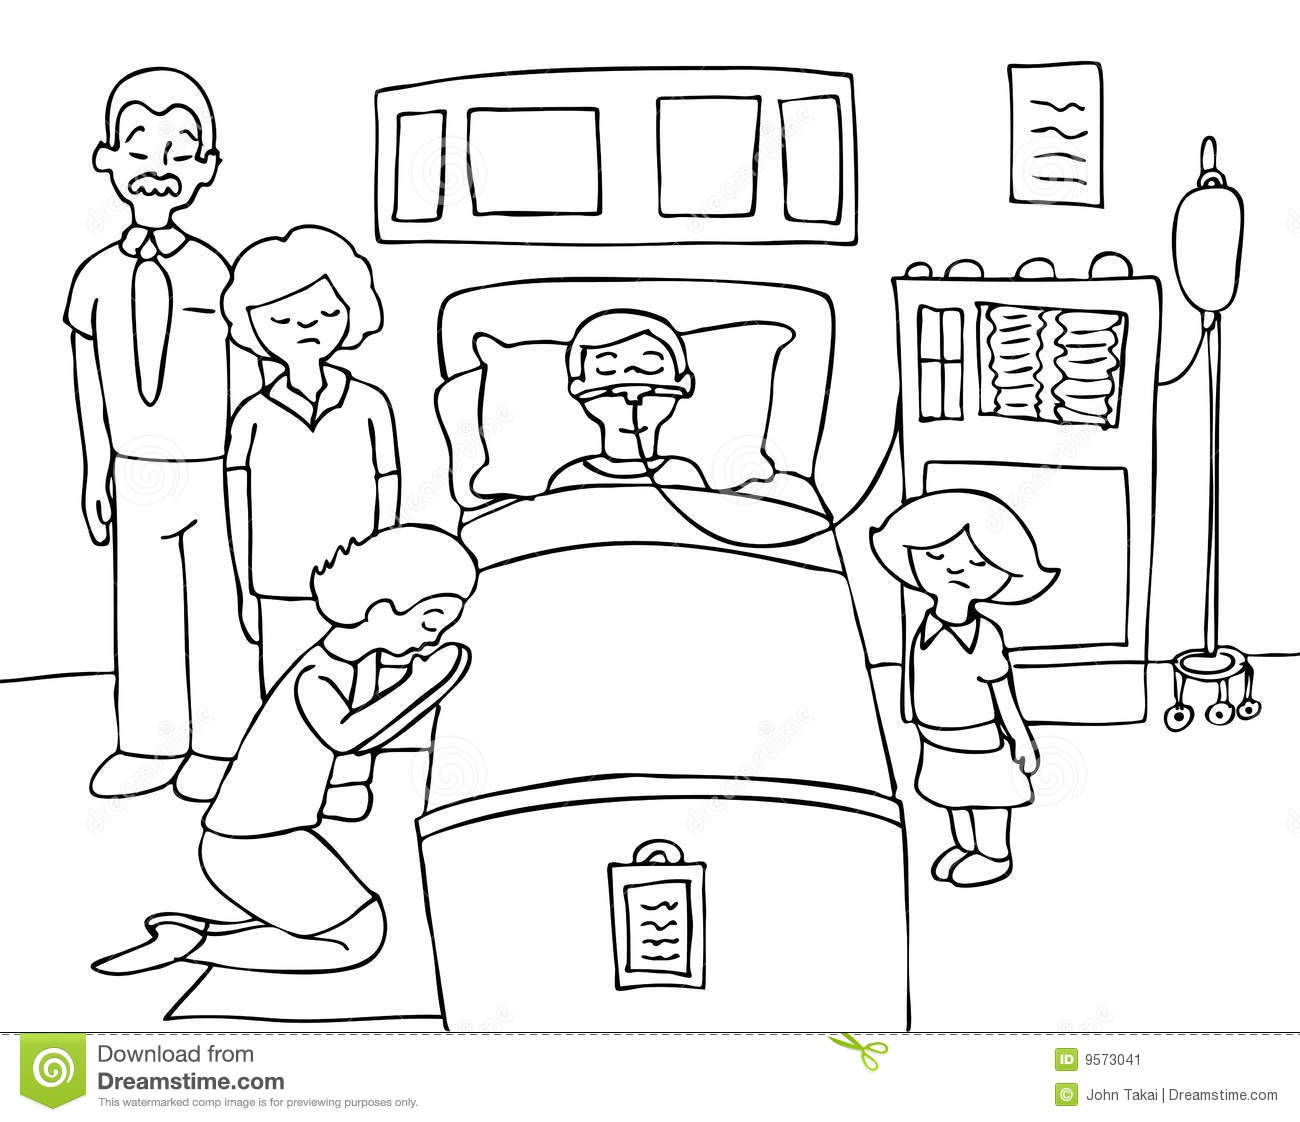 Clip Art Person In A Coma Clipart.